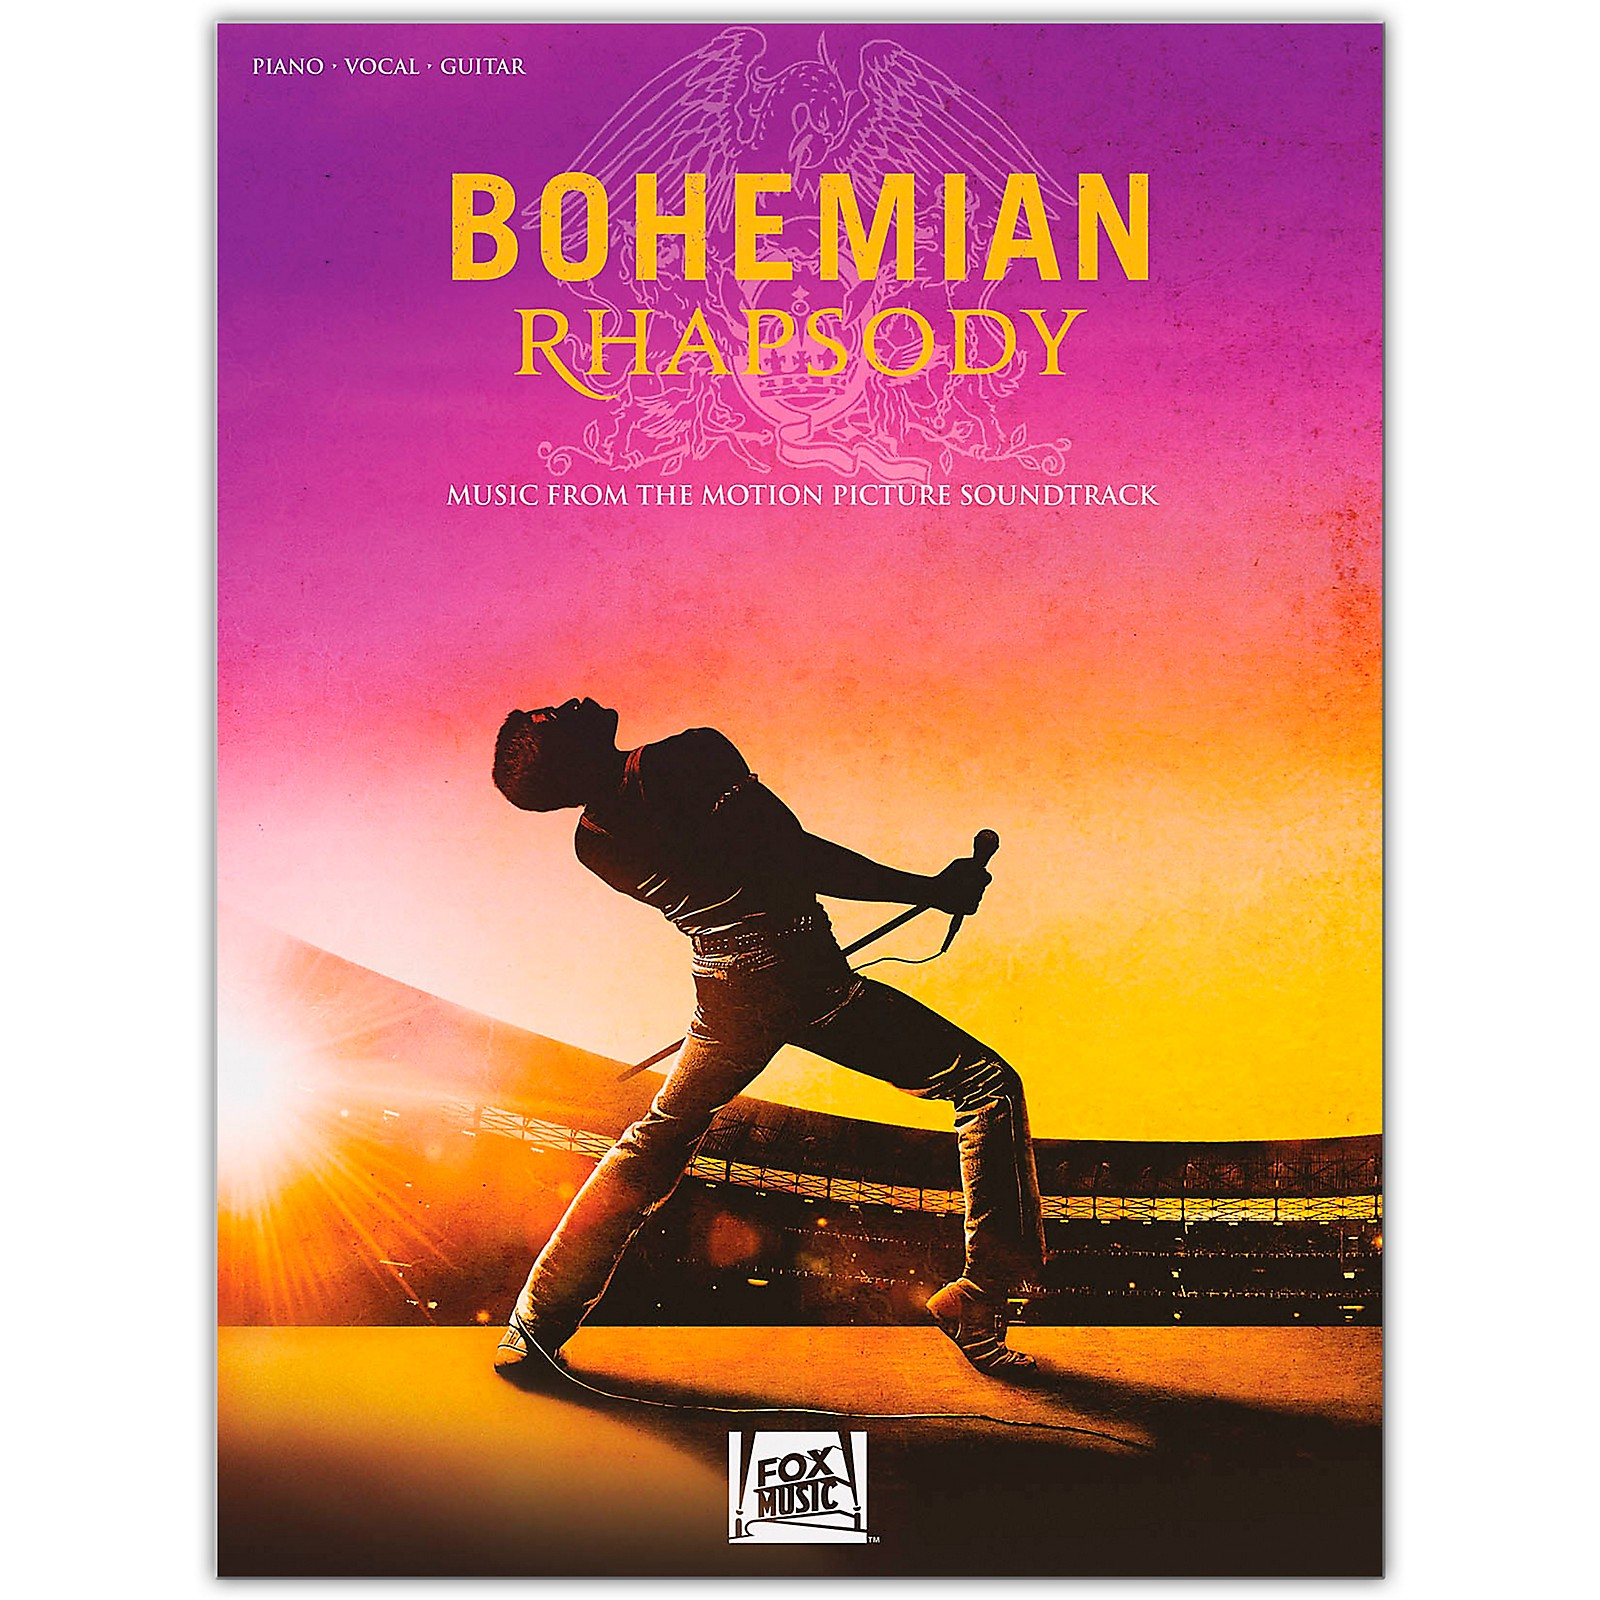 Hal Leonard Bohemian Rhapsody - Music from the Motion Picture Soundtrack Piano/Vocal/Guitar Songbook